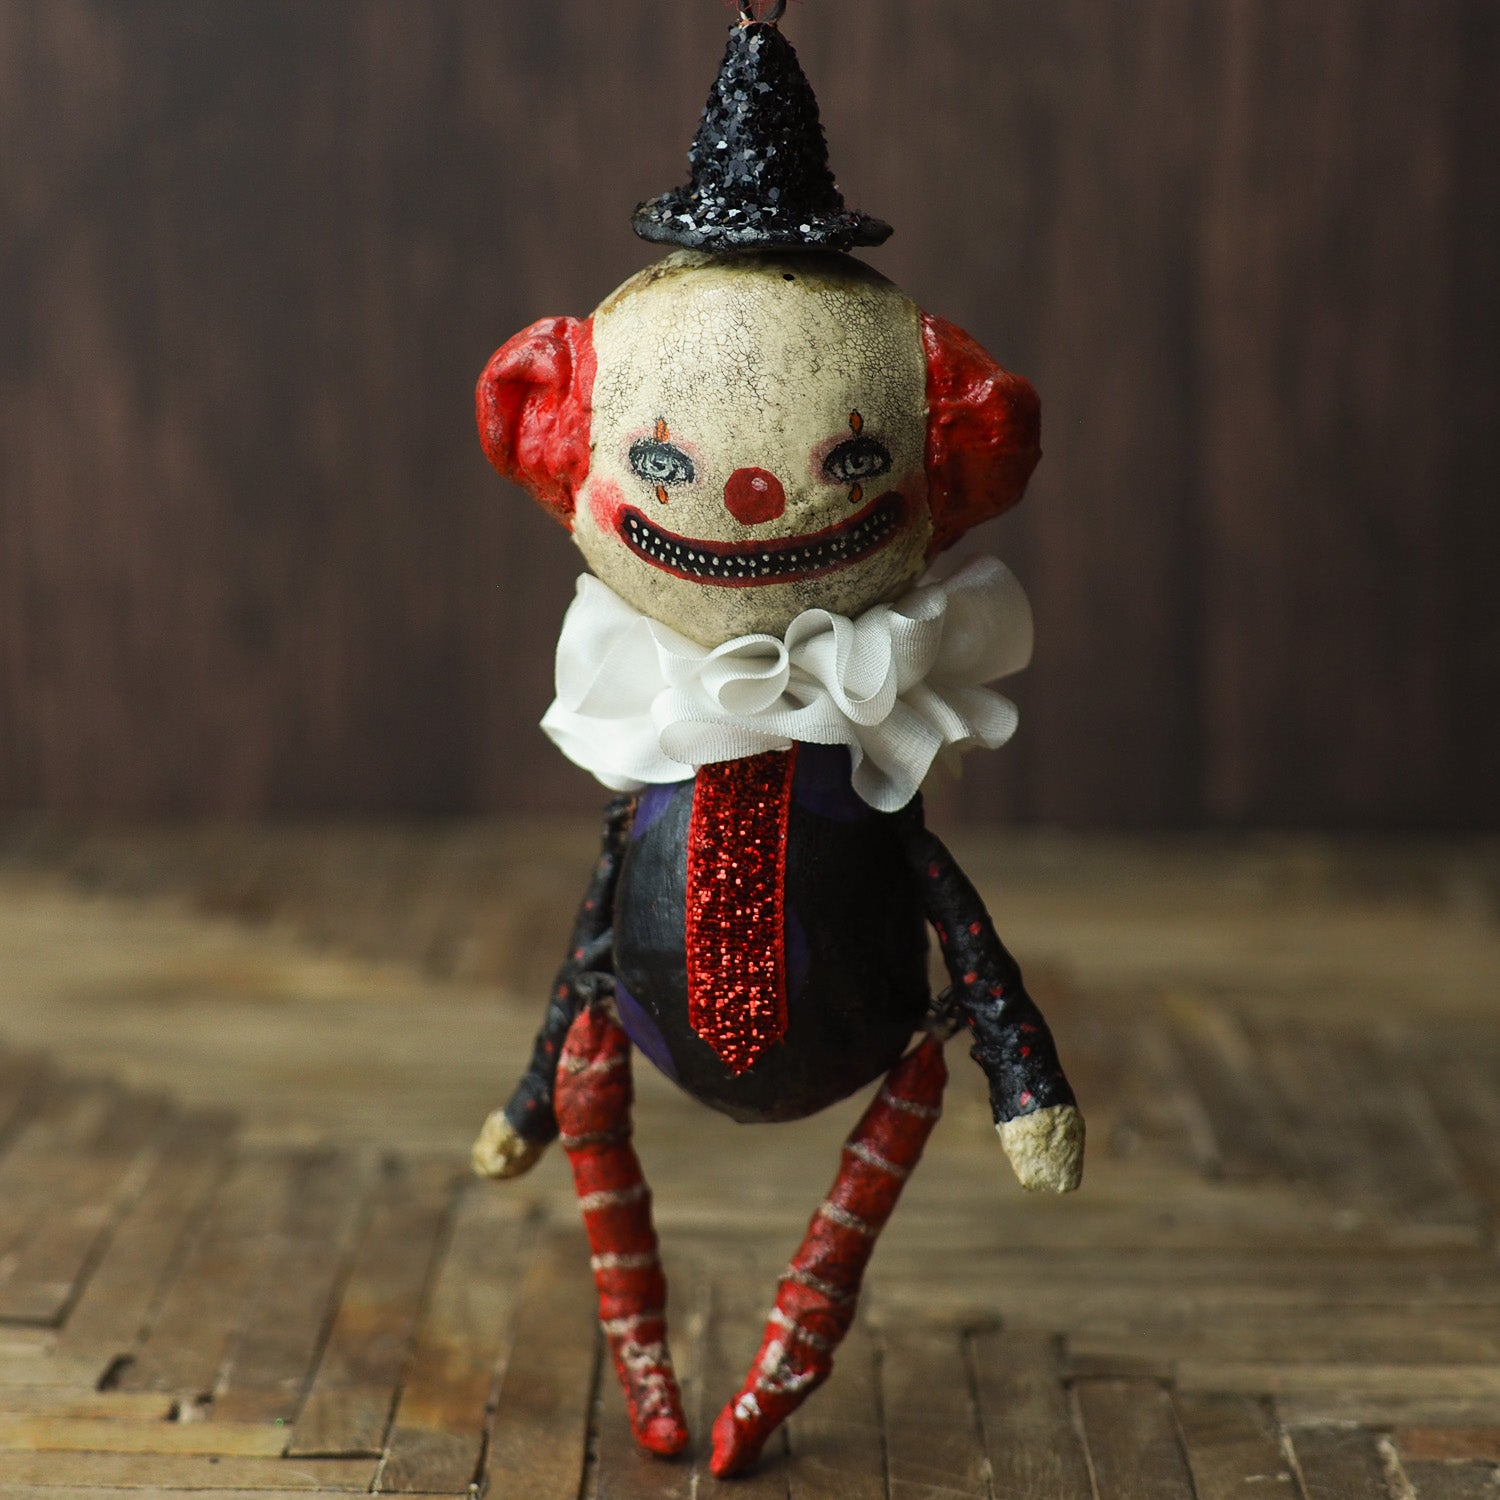 Original Halloween art doll original creation by Danita Art. Paper Clay, sculpted and painted in a spooky whimsical unique work of art. Clown IT Pennywise Evil.